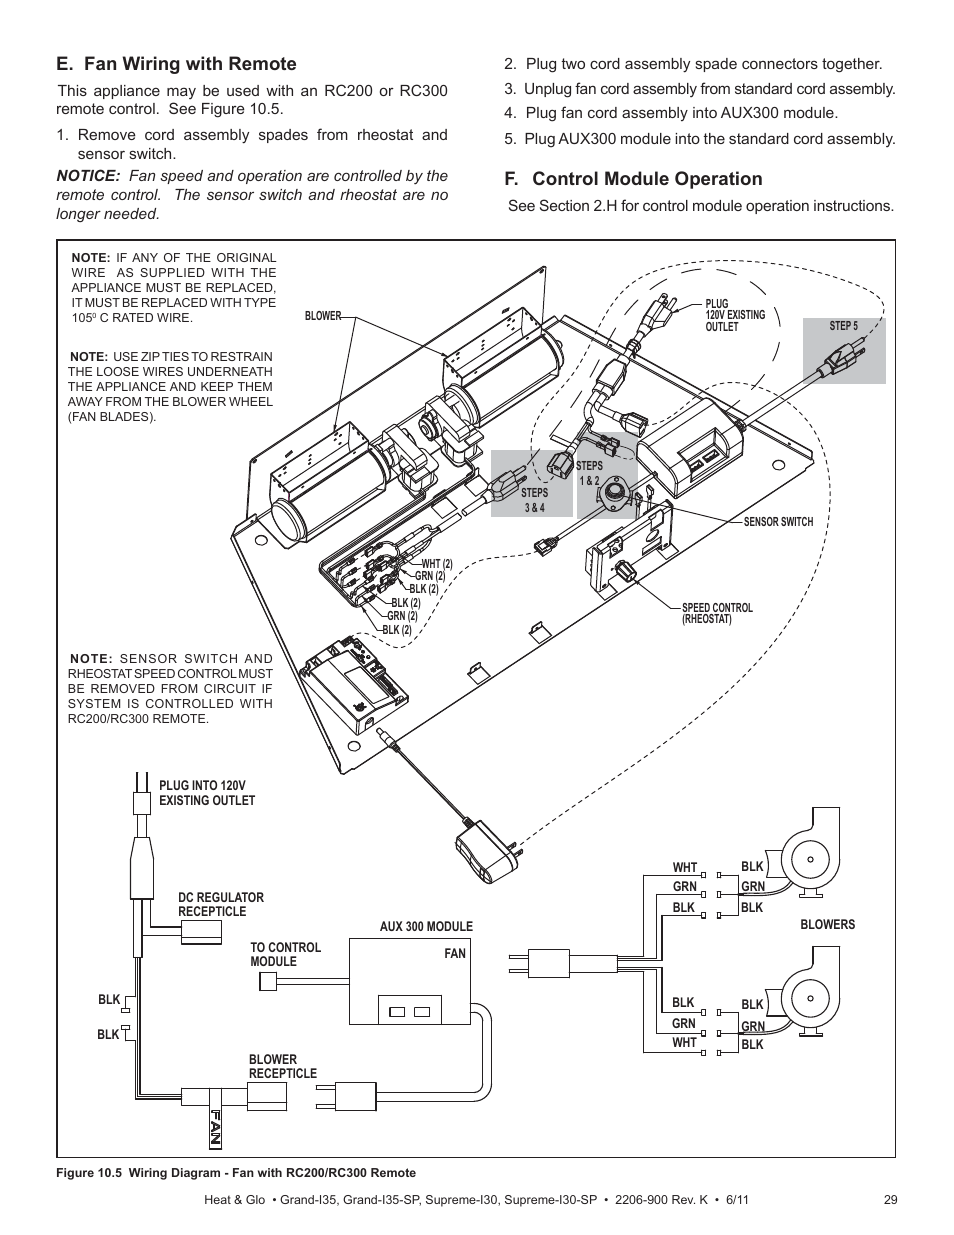 e fan wiring with remote, f control module operation heat & glo refrigeration wiring diagrams e fan wiring with remote, f control module operation heat & glo fireplace supreme i30 user manual page 29 43